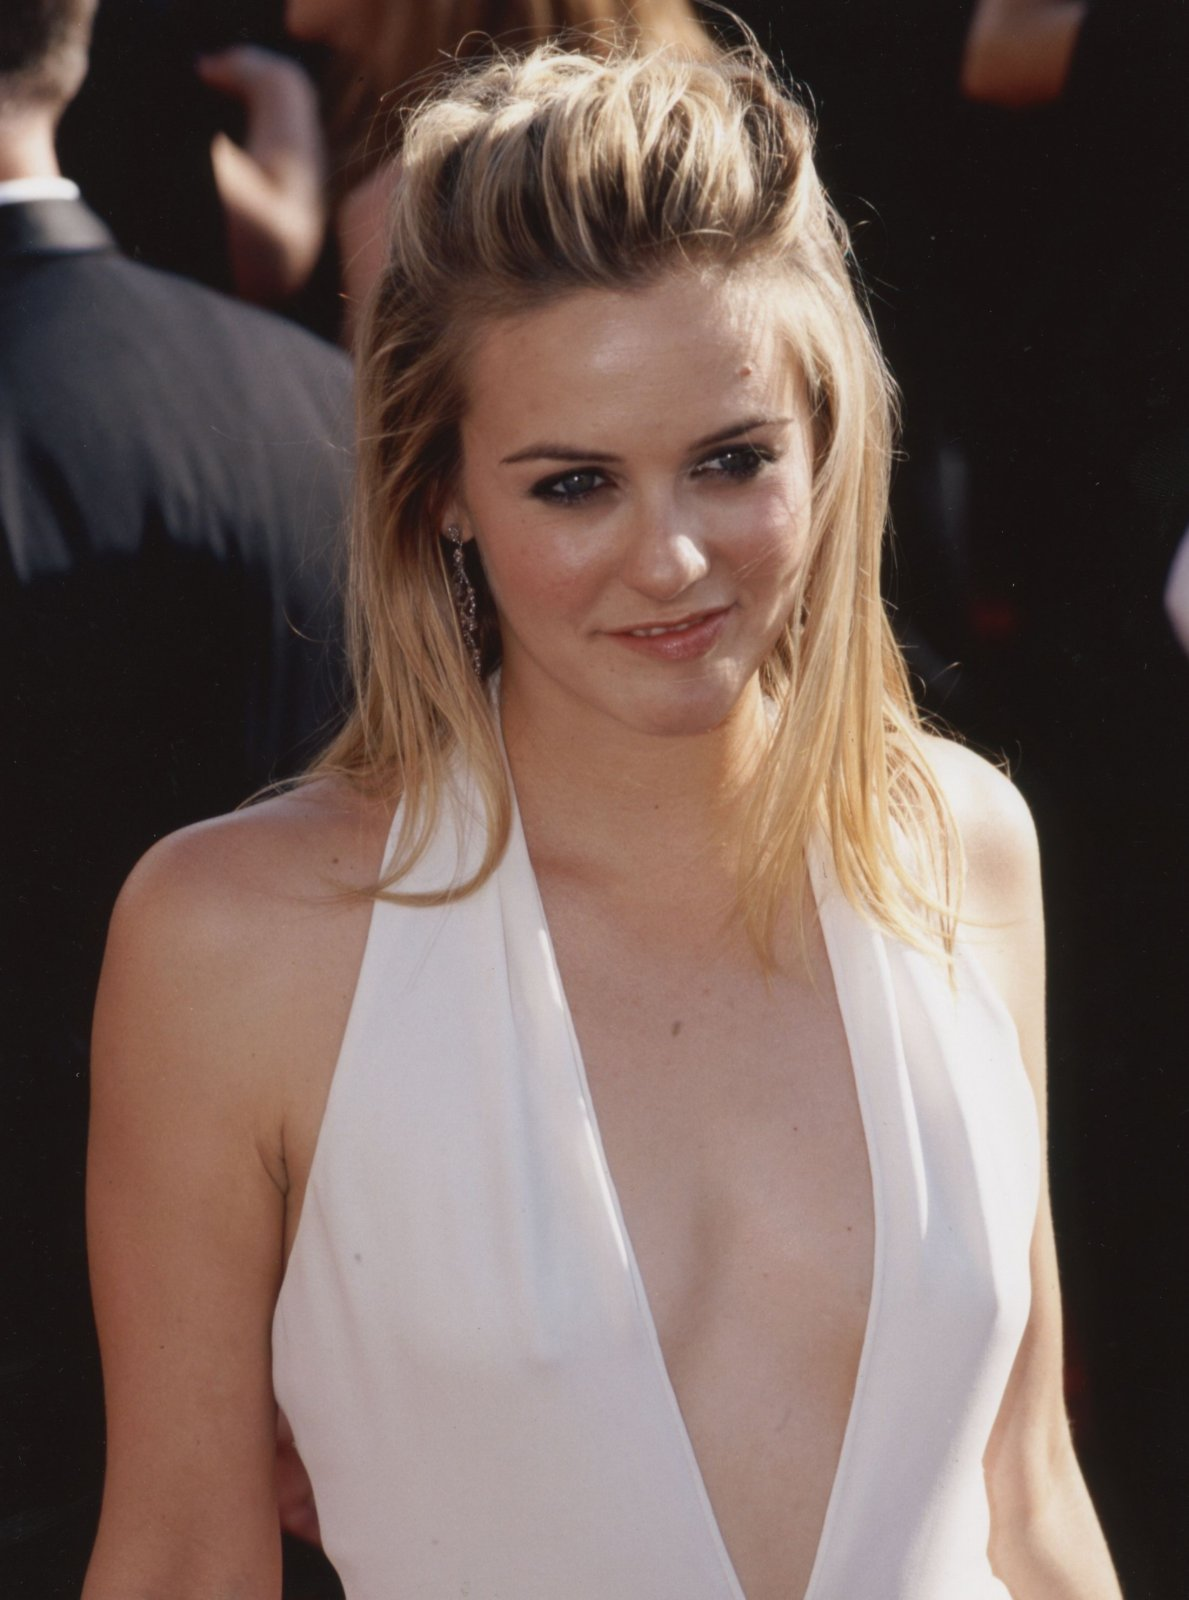 Hollywood Model Alicia Silverstone Wallpapers